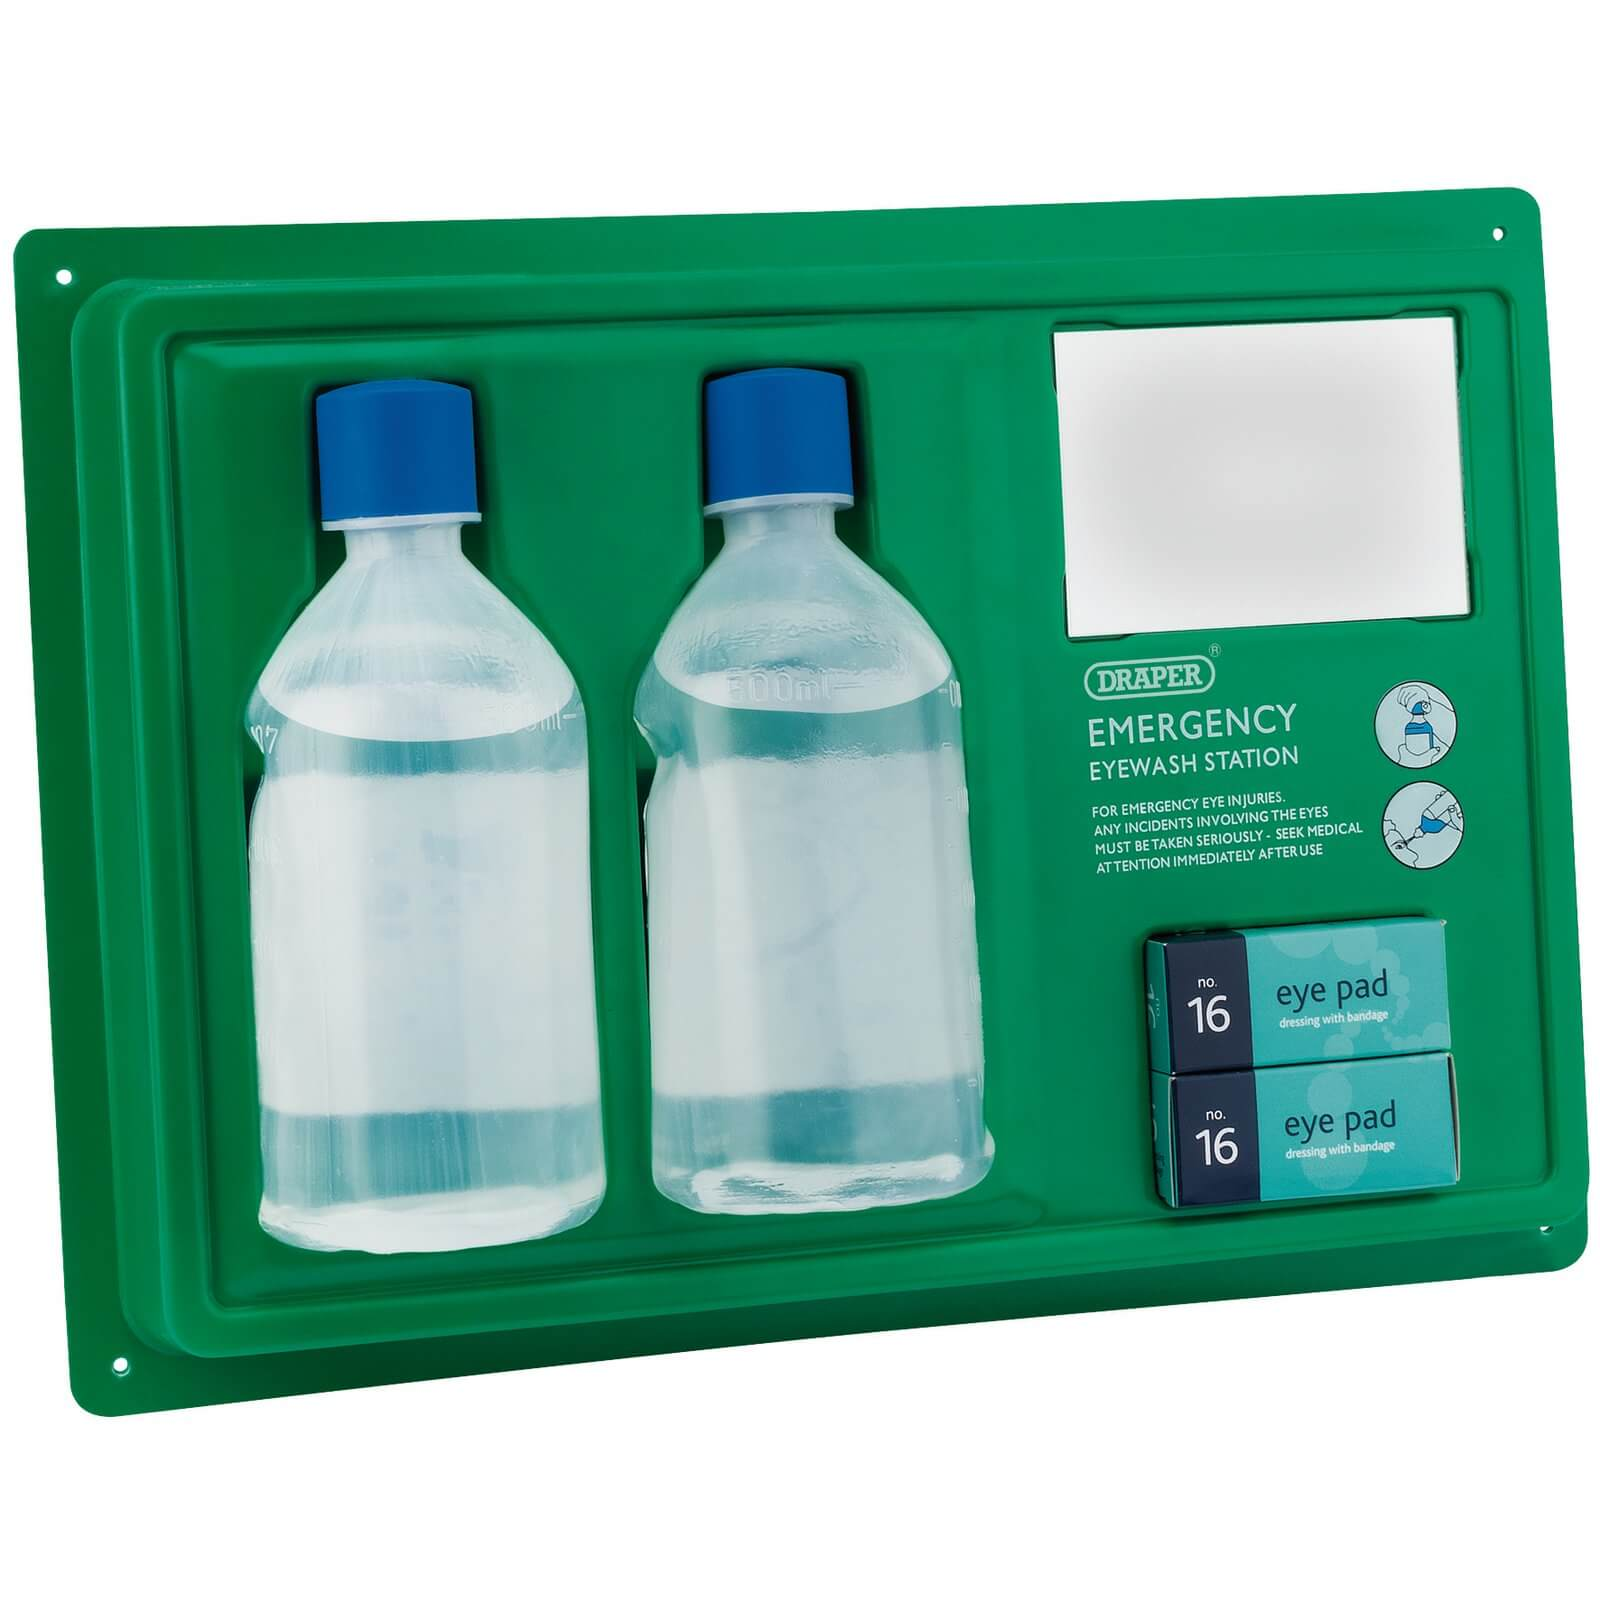 Image of Draper Emergency Sterile Eye Wash Station